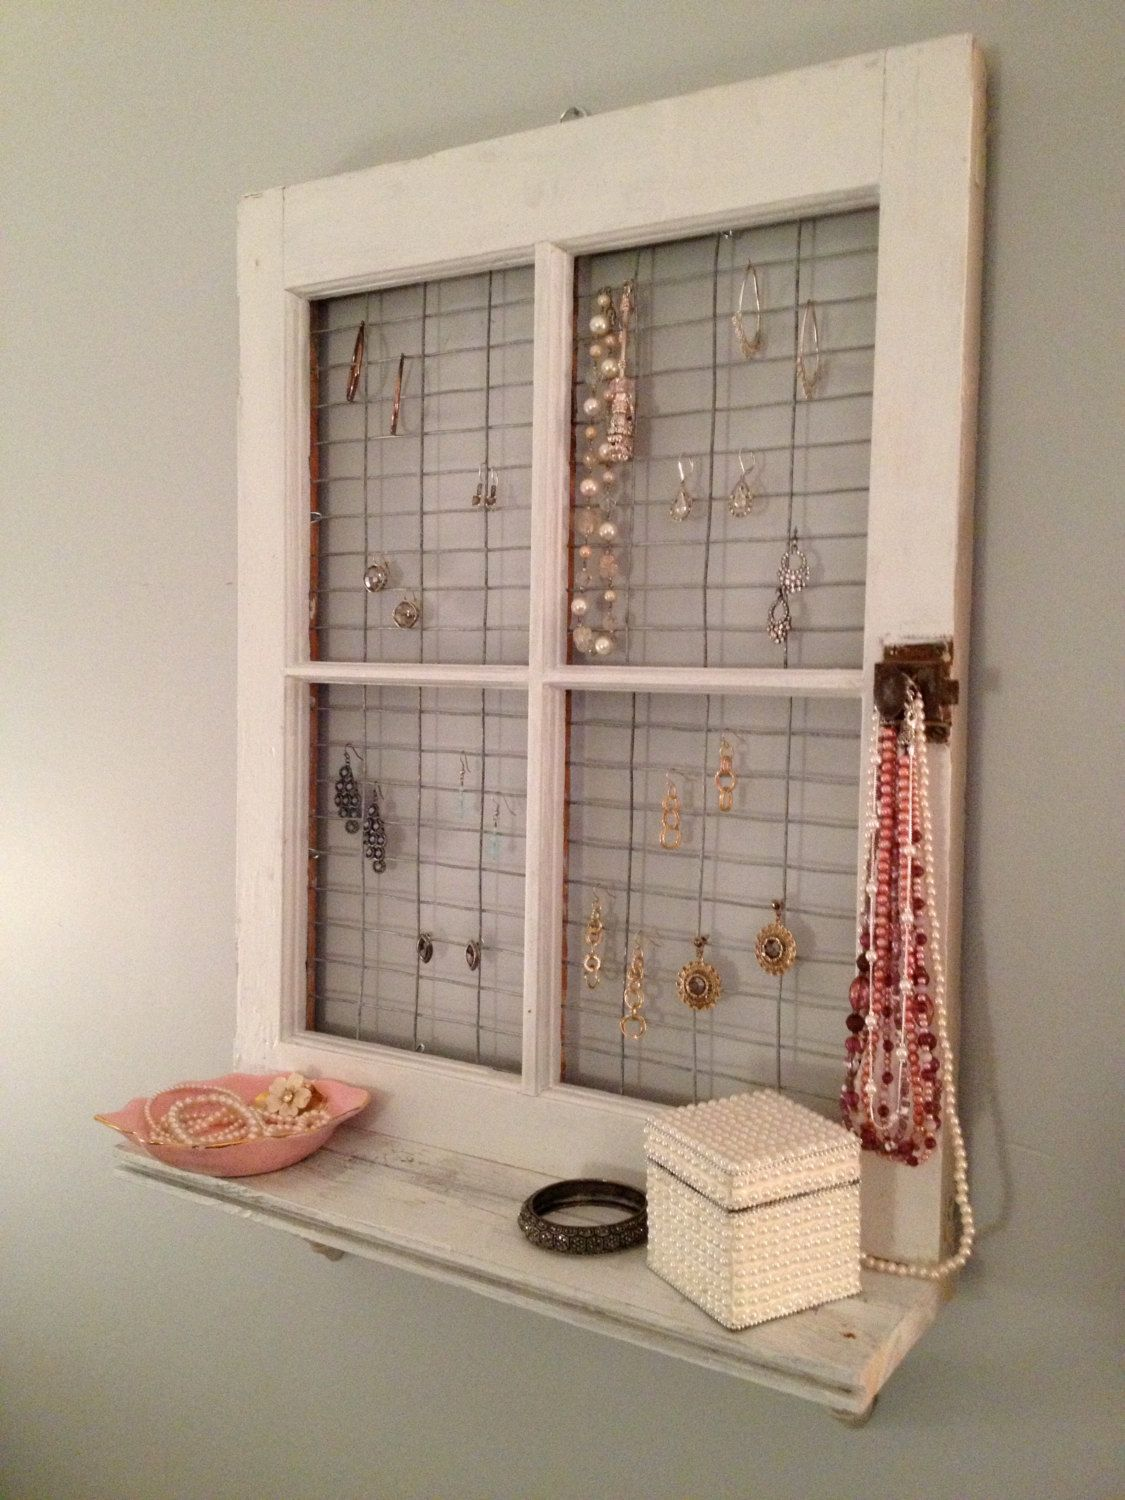 Exceptional Vintage Window Frame And Shelf Wall Decor